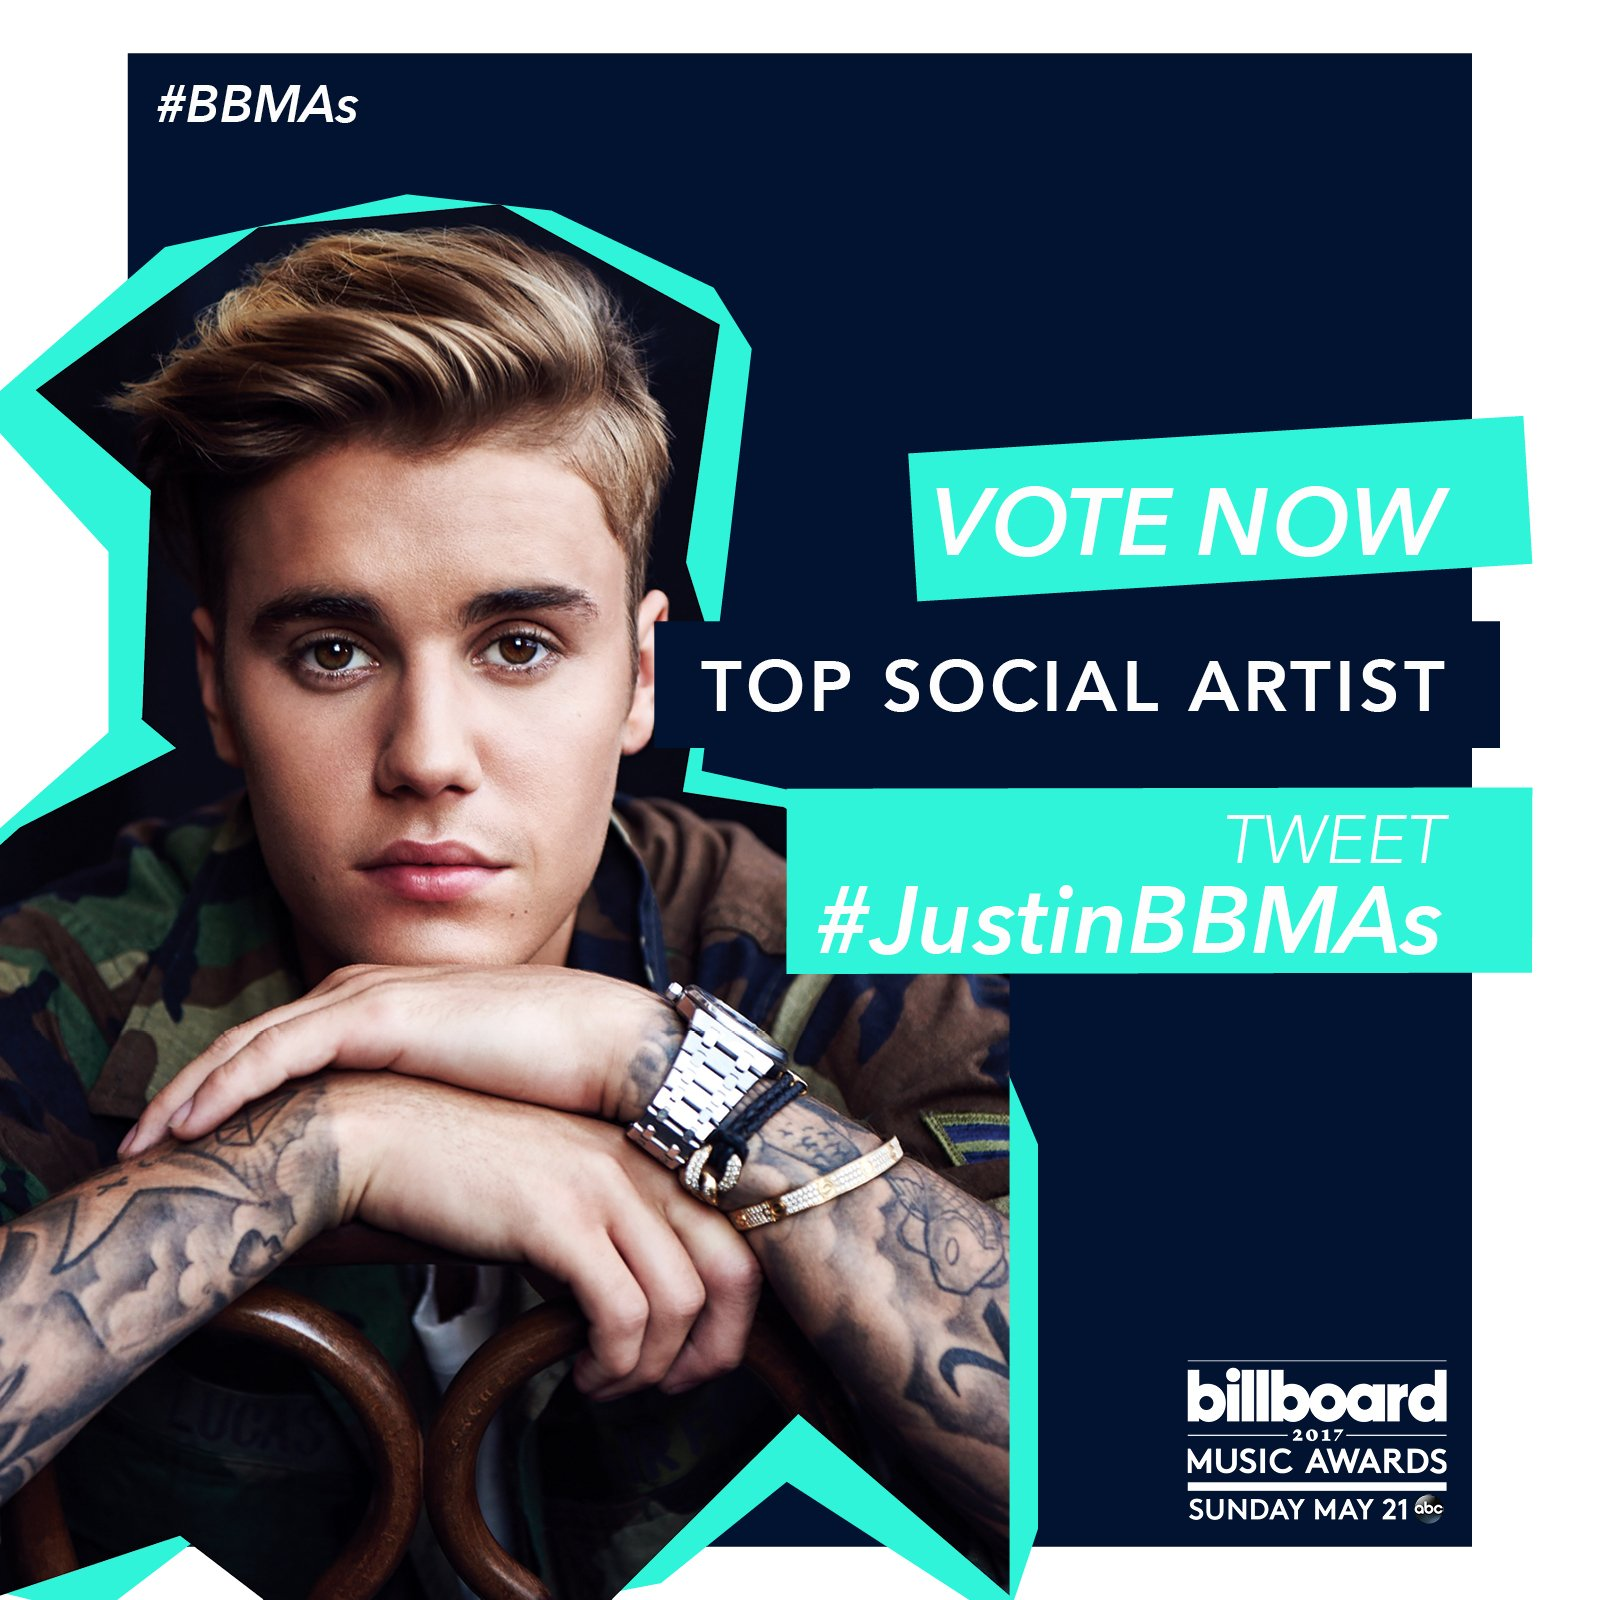 RT to vote #JustinBBMAs https://t.co/in1OoABEjH